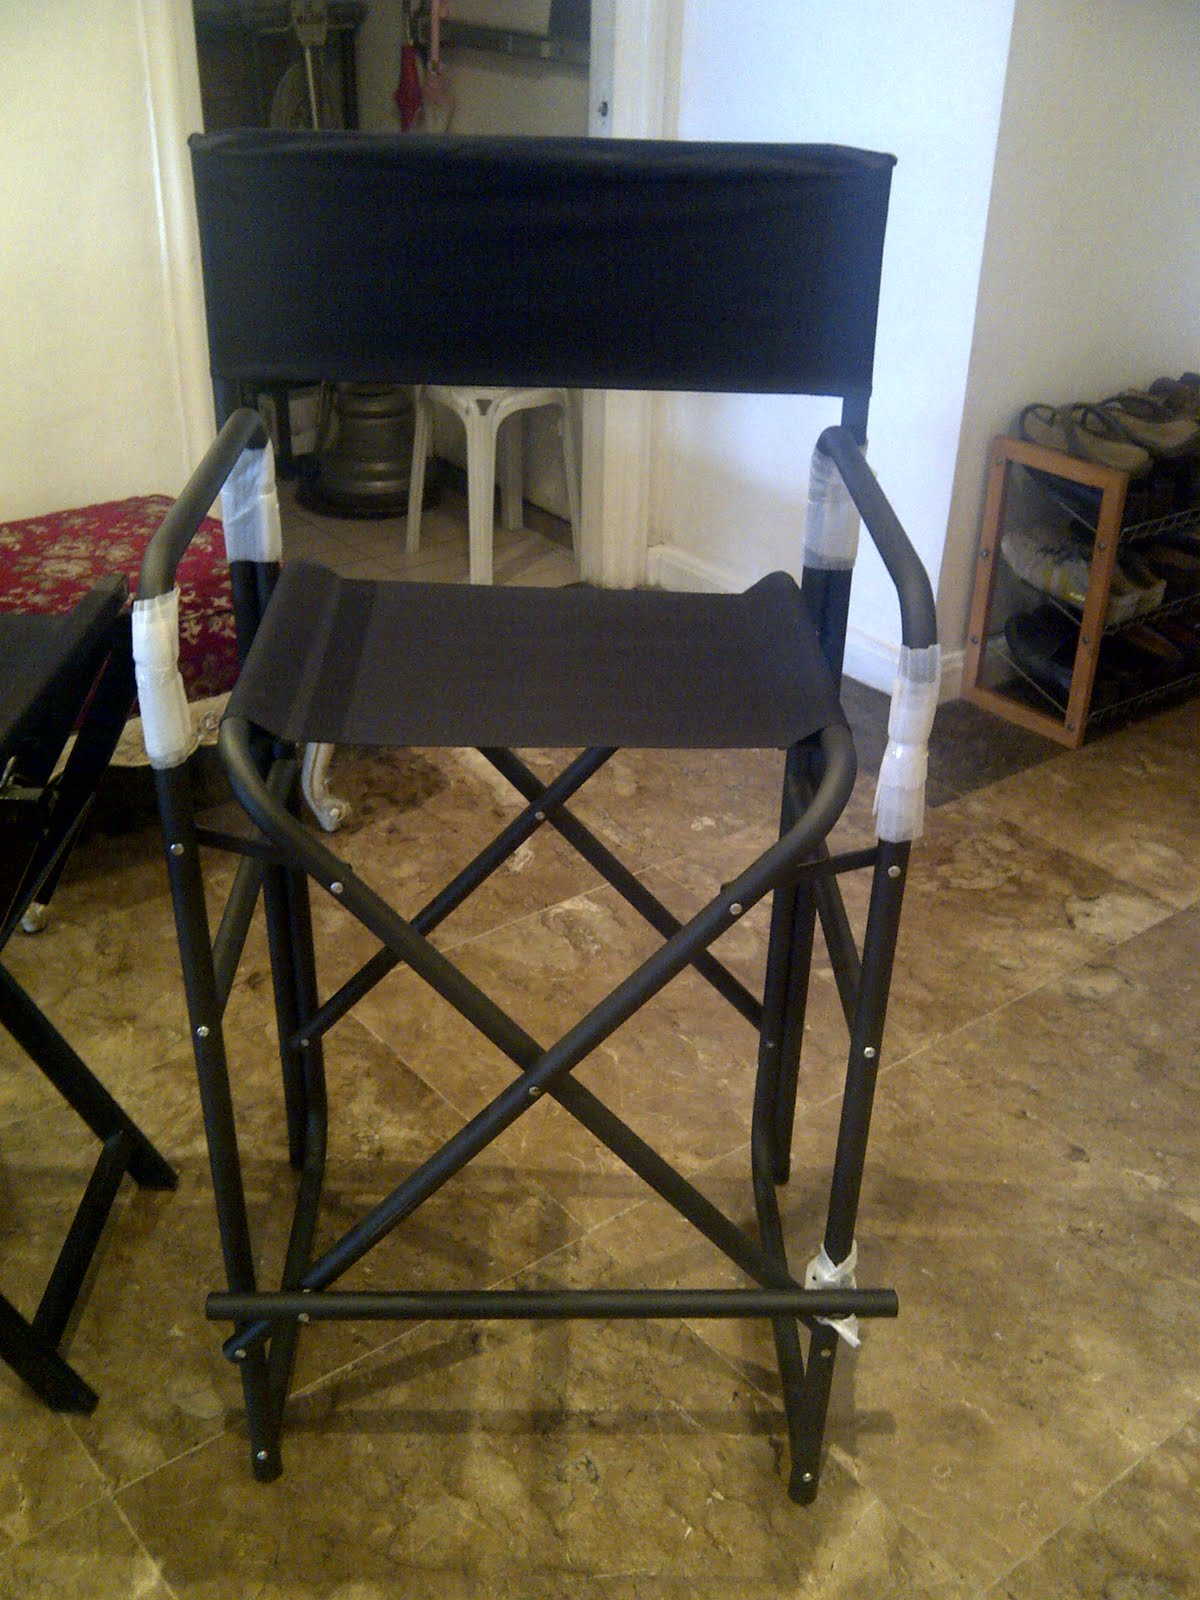 My new make up chair!!!